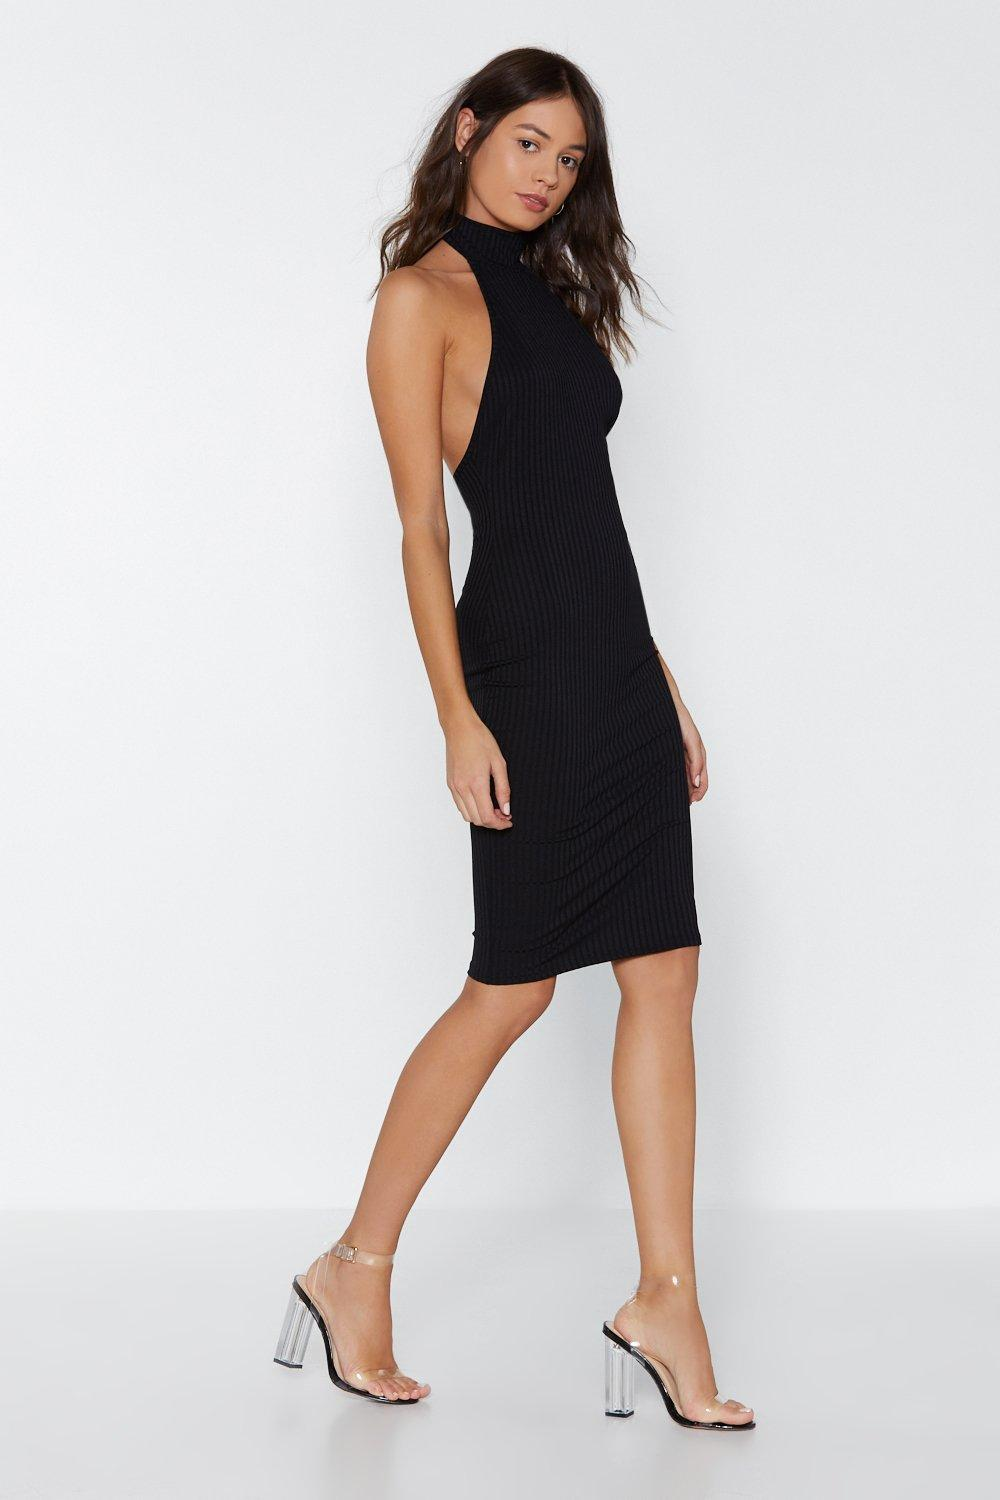 ce55e63faa Open to New Ideas High Neck Dress. Hover to zoom